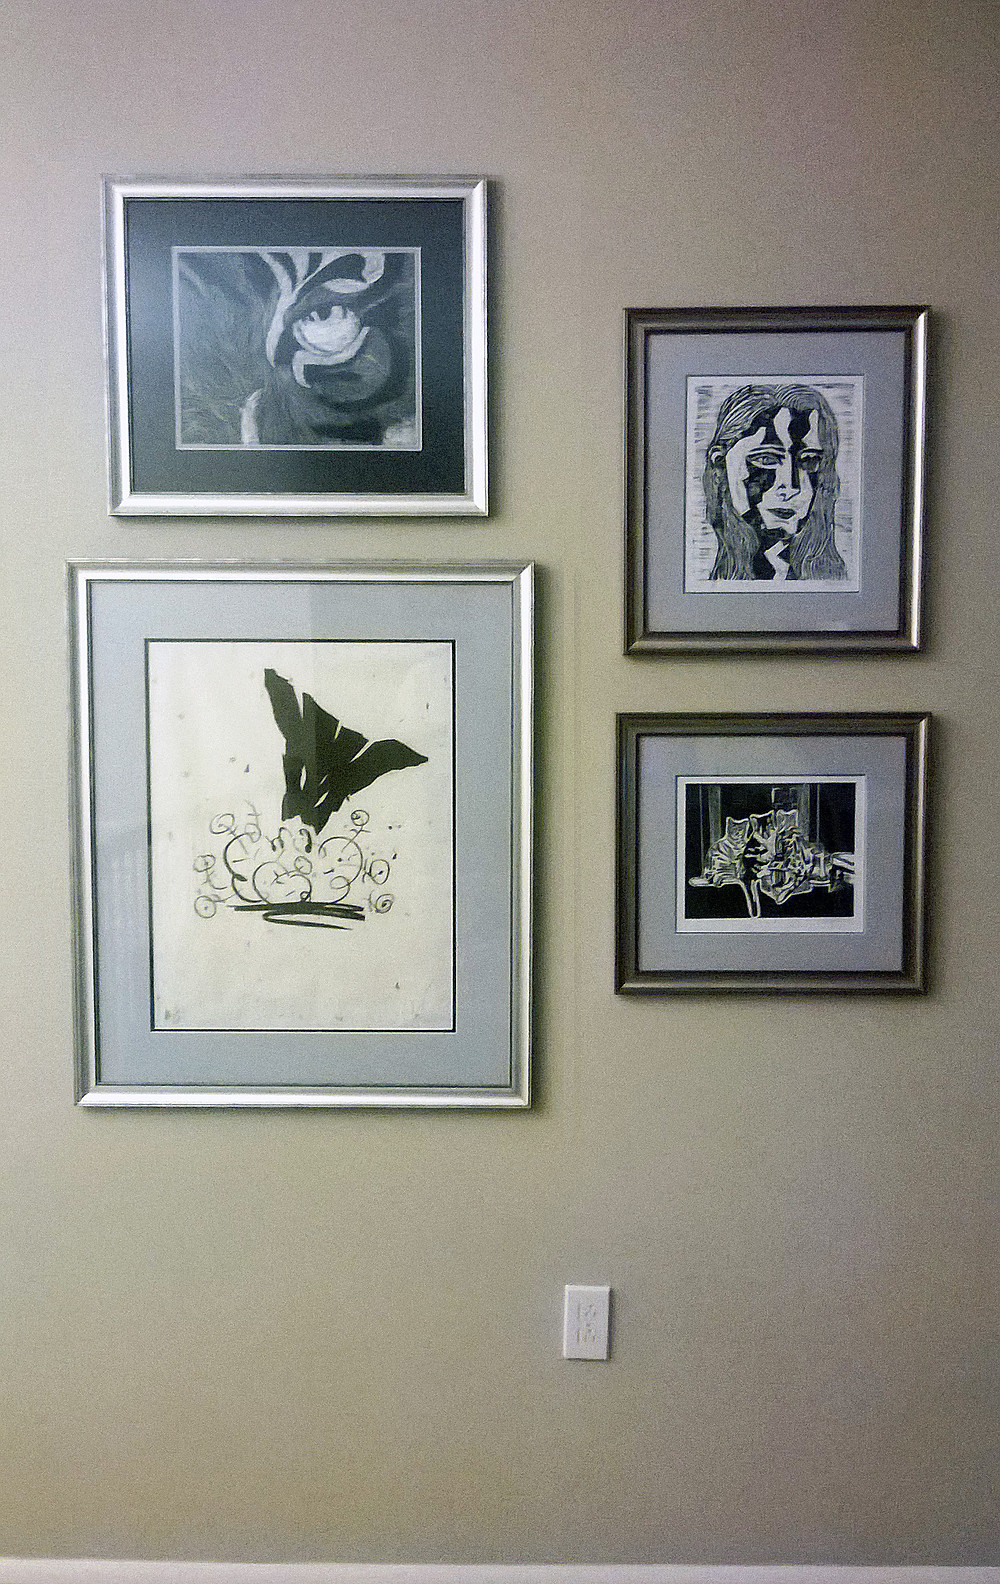 Hanging groups of art in a portrait-orientation